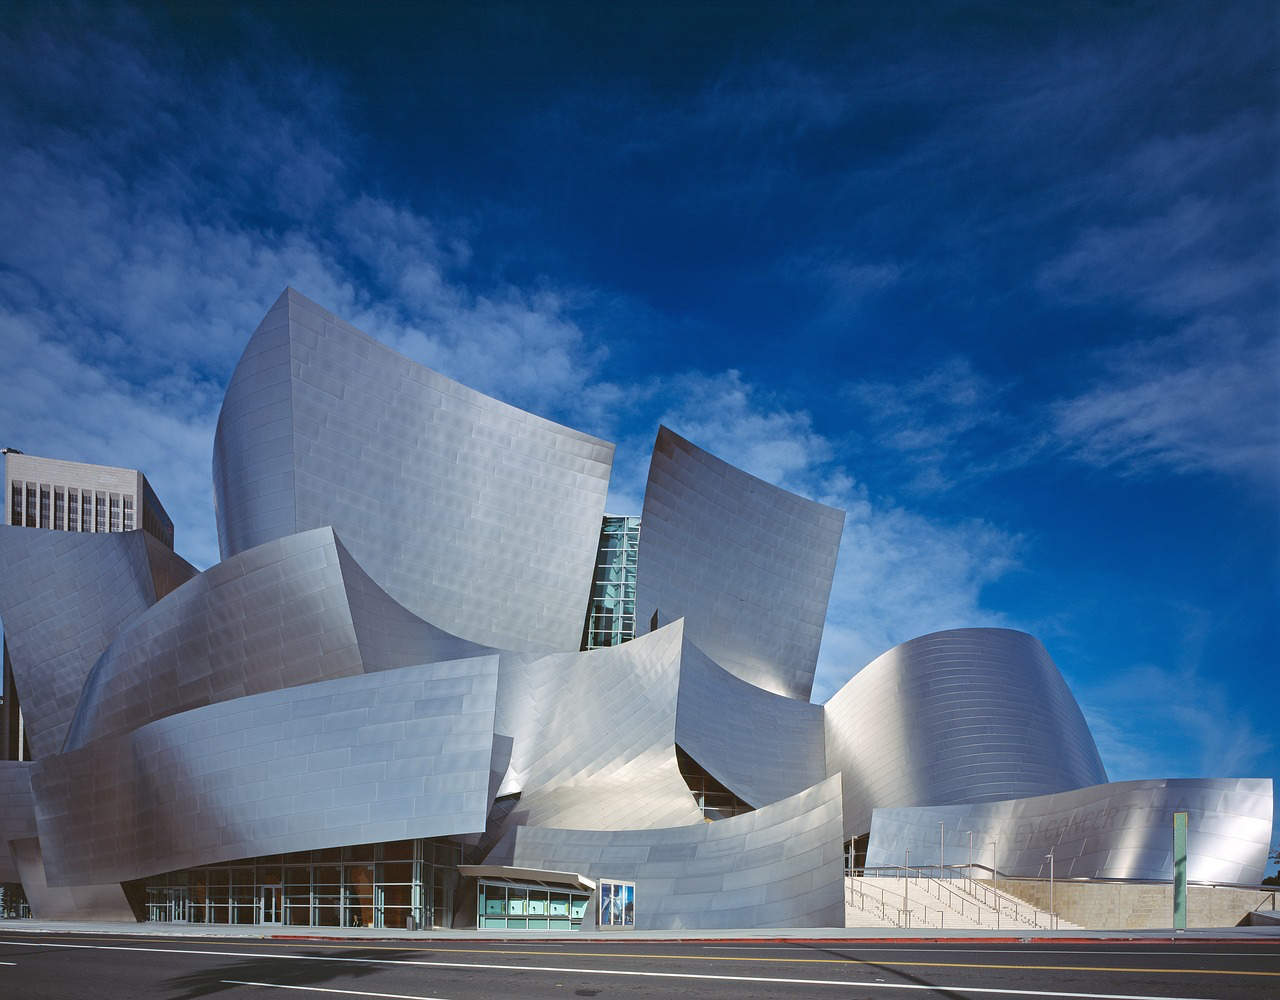 visit the Walt Disney Concert Hall during your 3 day itinerary for Los Angeles.